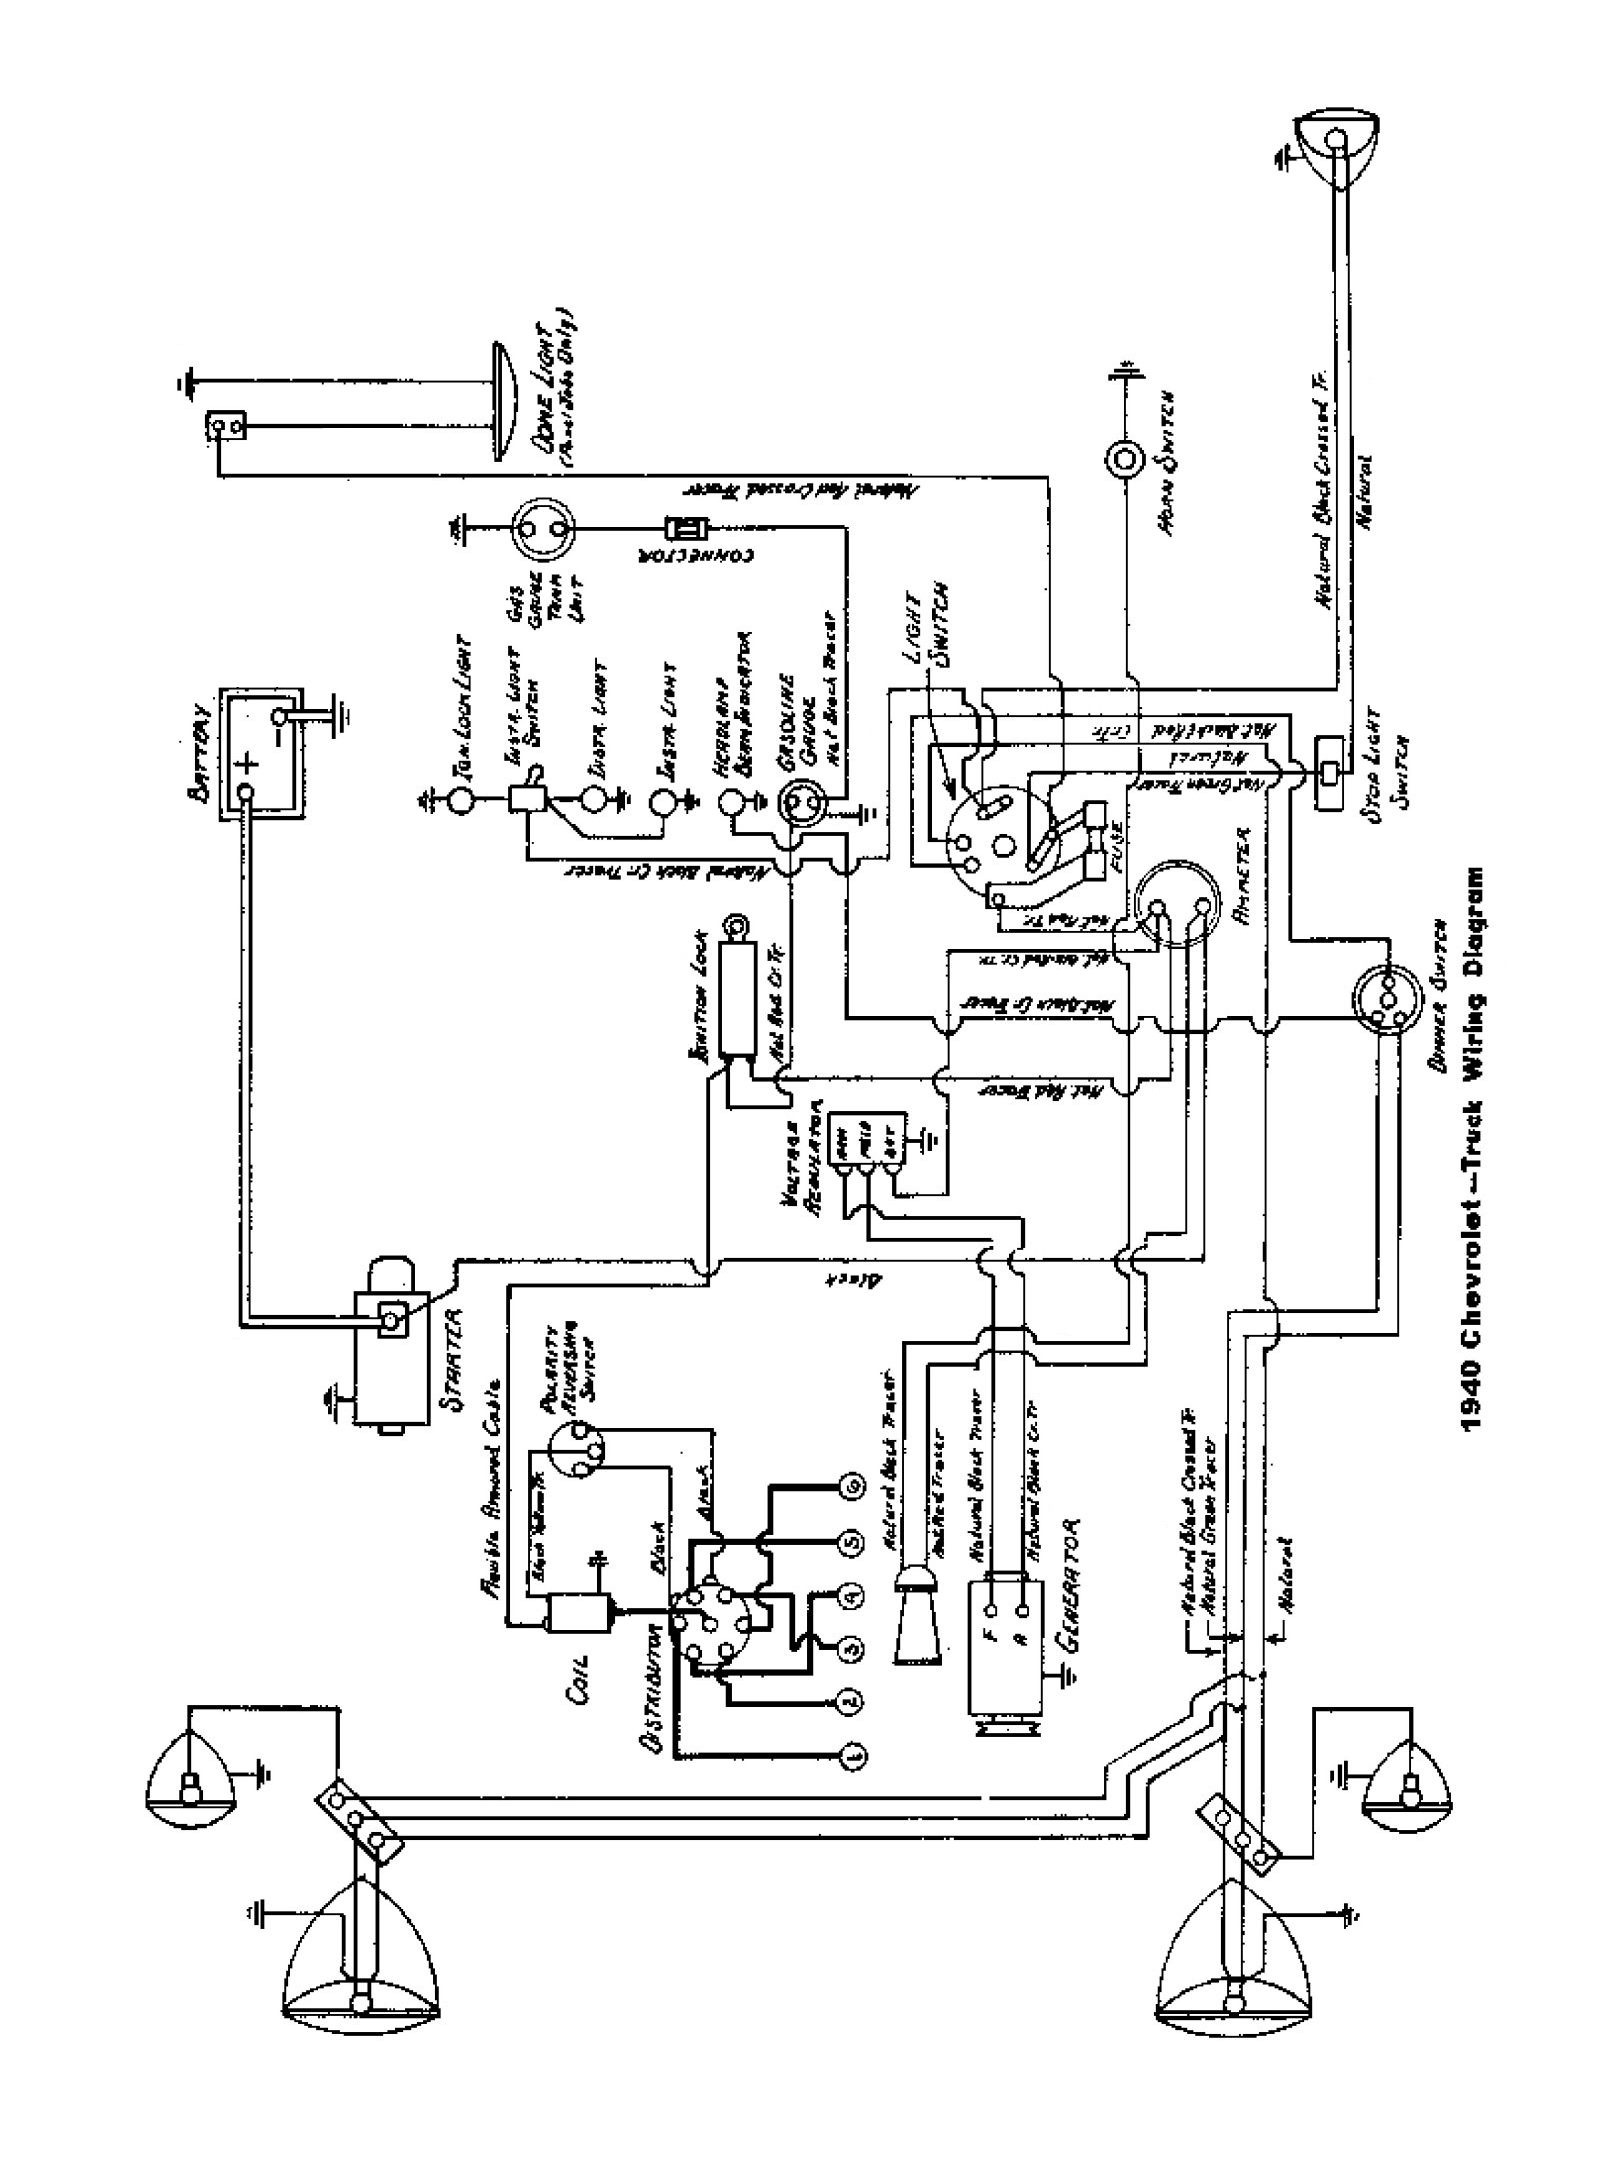 Wiring Diagram For 1940 Ford Headlight Switch on 3 wire alternator wiring diagram bmw